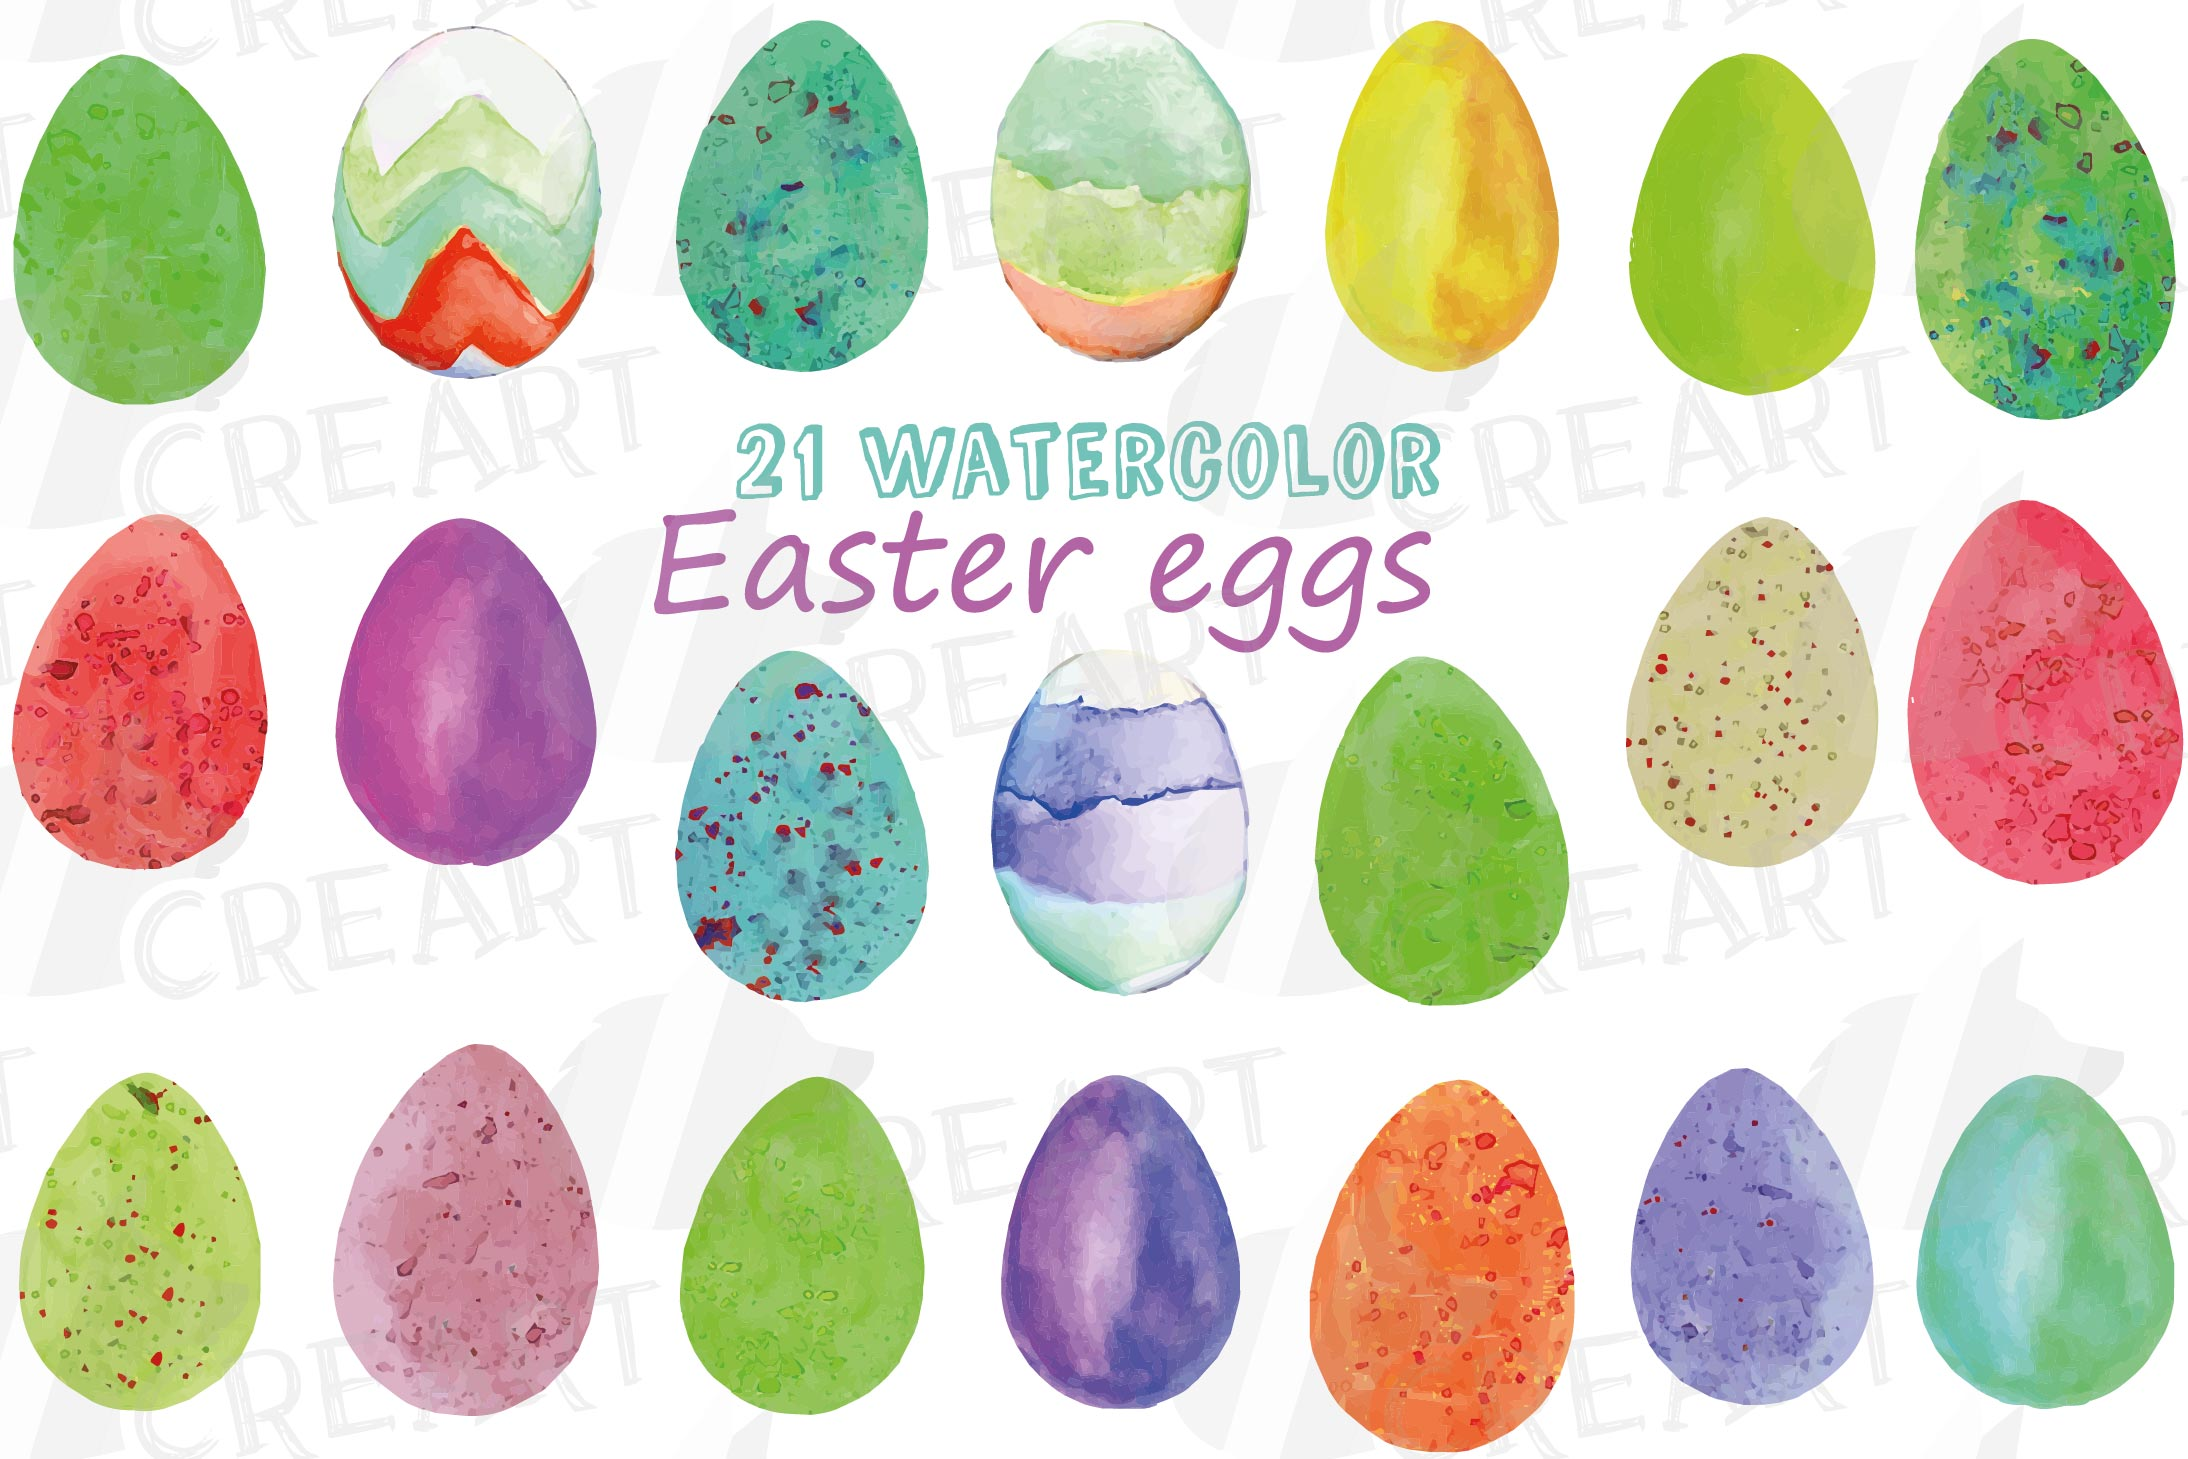 Watercolor Easter eggs colorful clip art pack example image 2